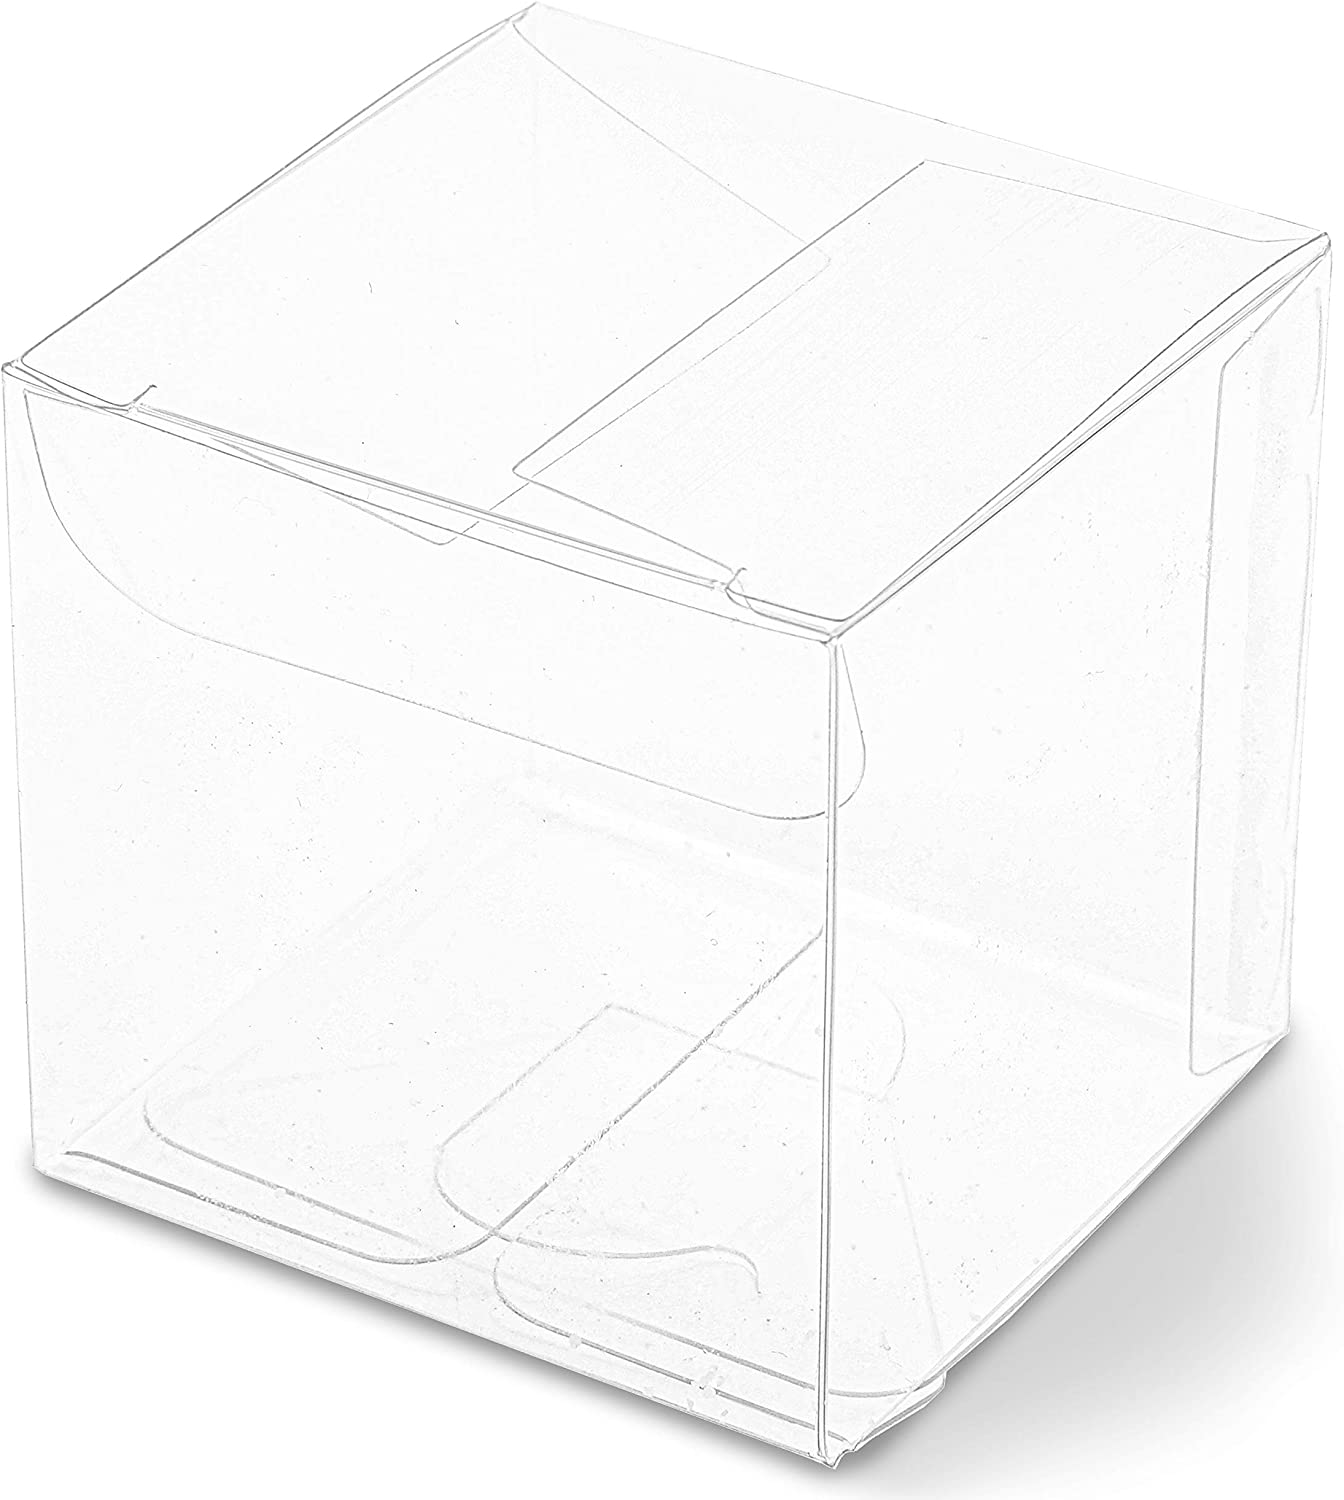 2 Inch Clear Candy Gift Box, Small Transparent Boxes for Party Favors (100 Pack)